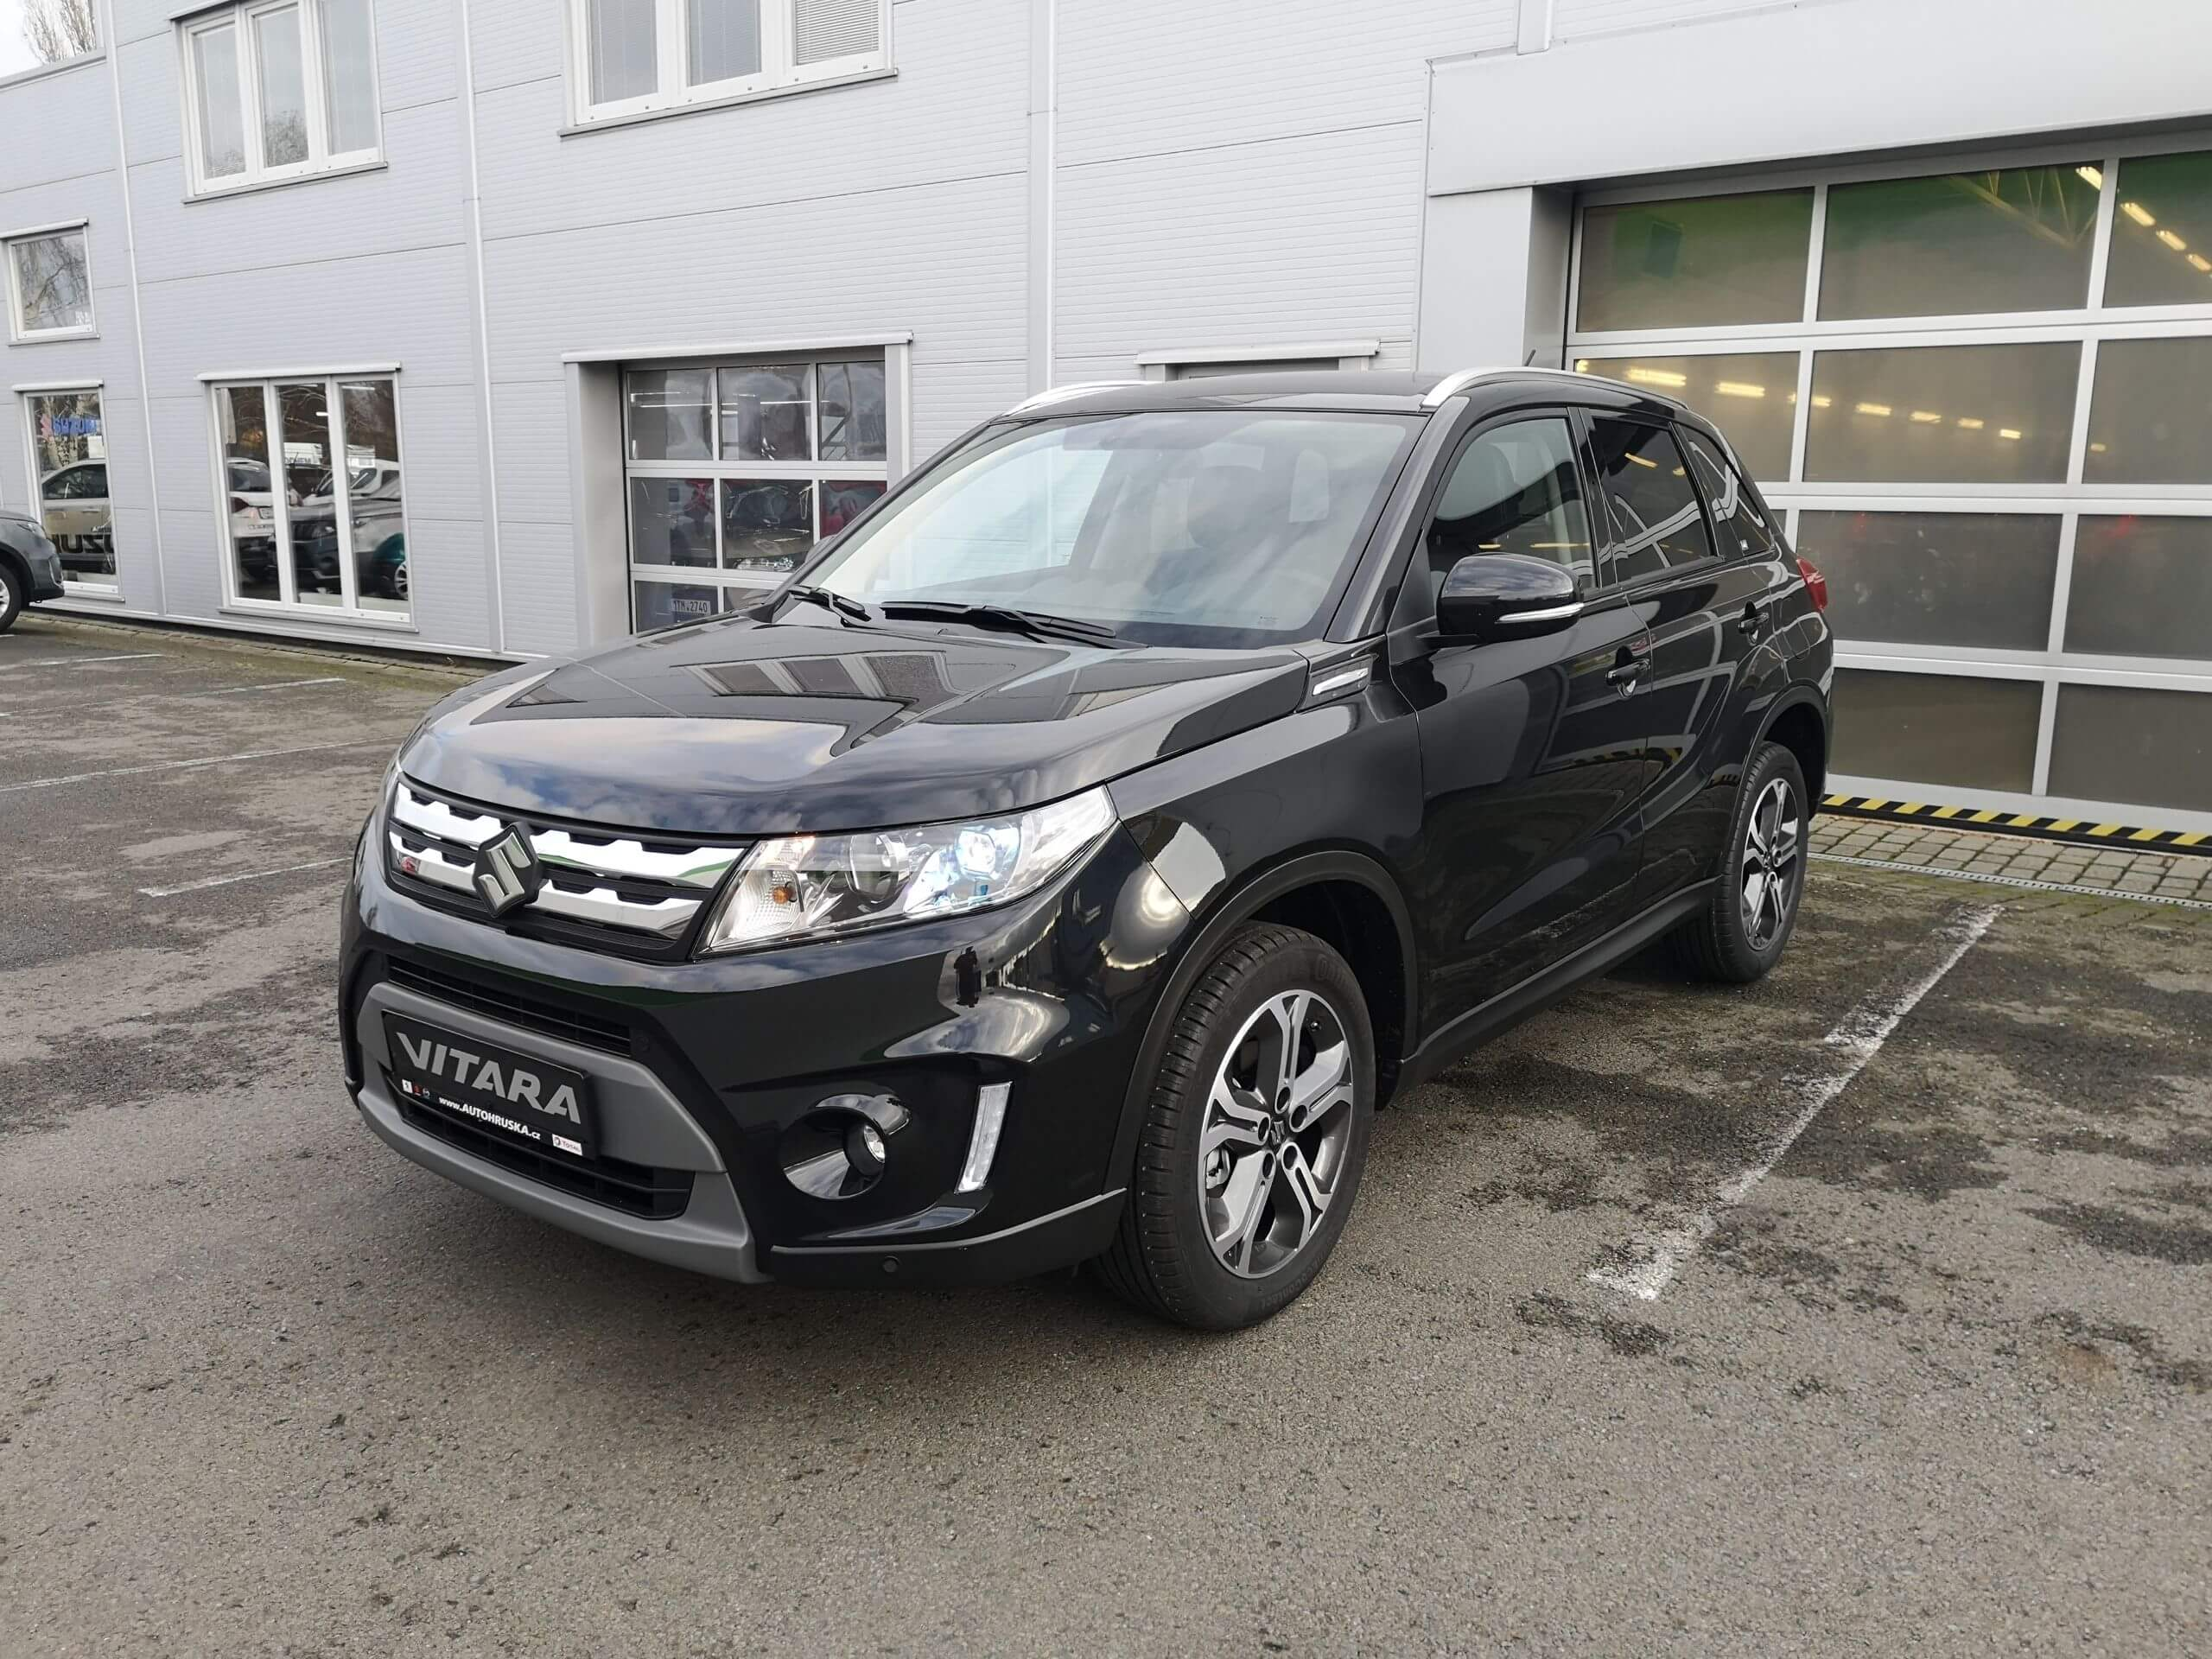 Vitara 1.6 VVT ELEGANCE AT ALLGRIP